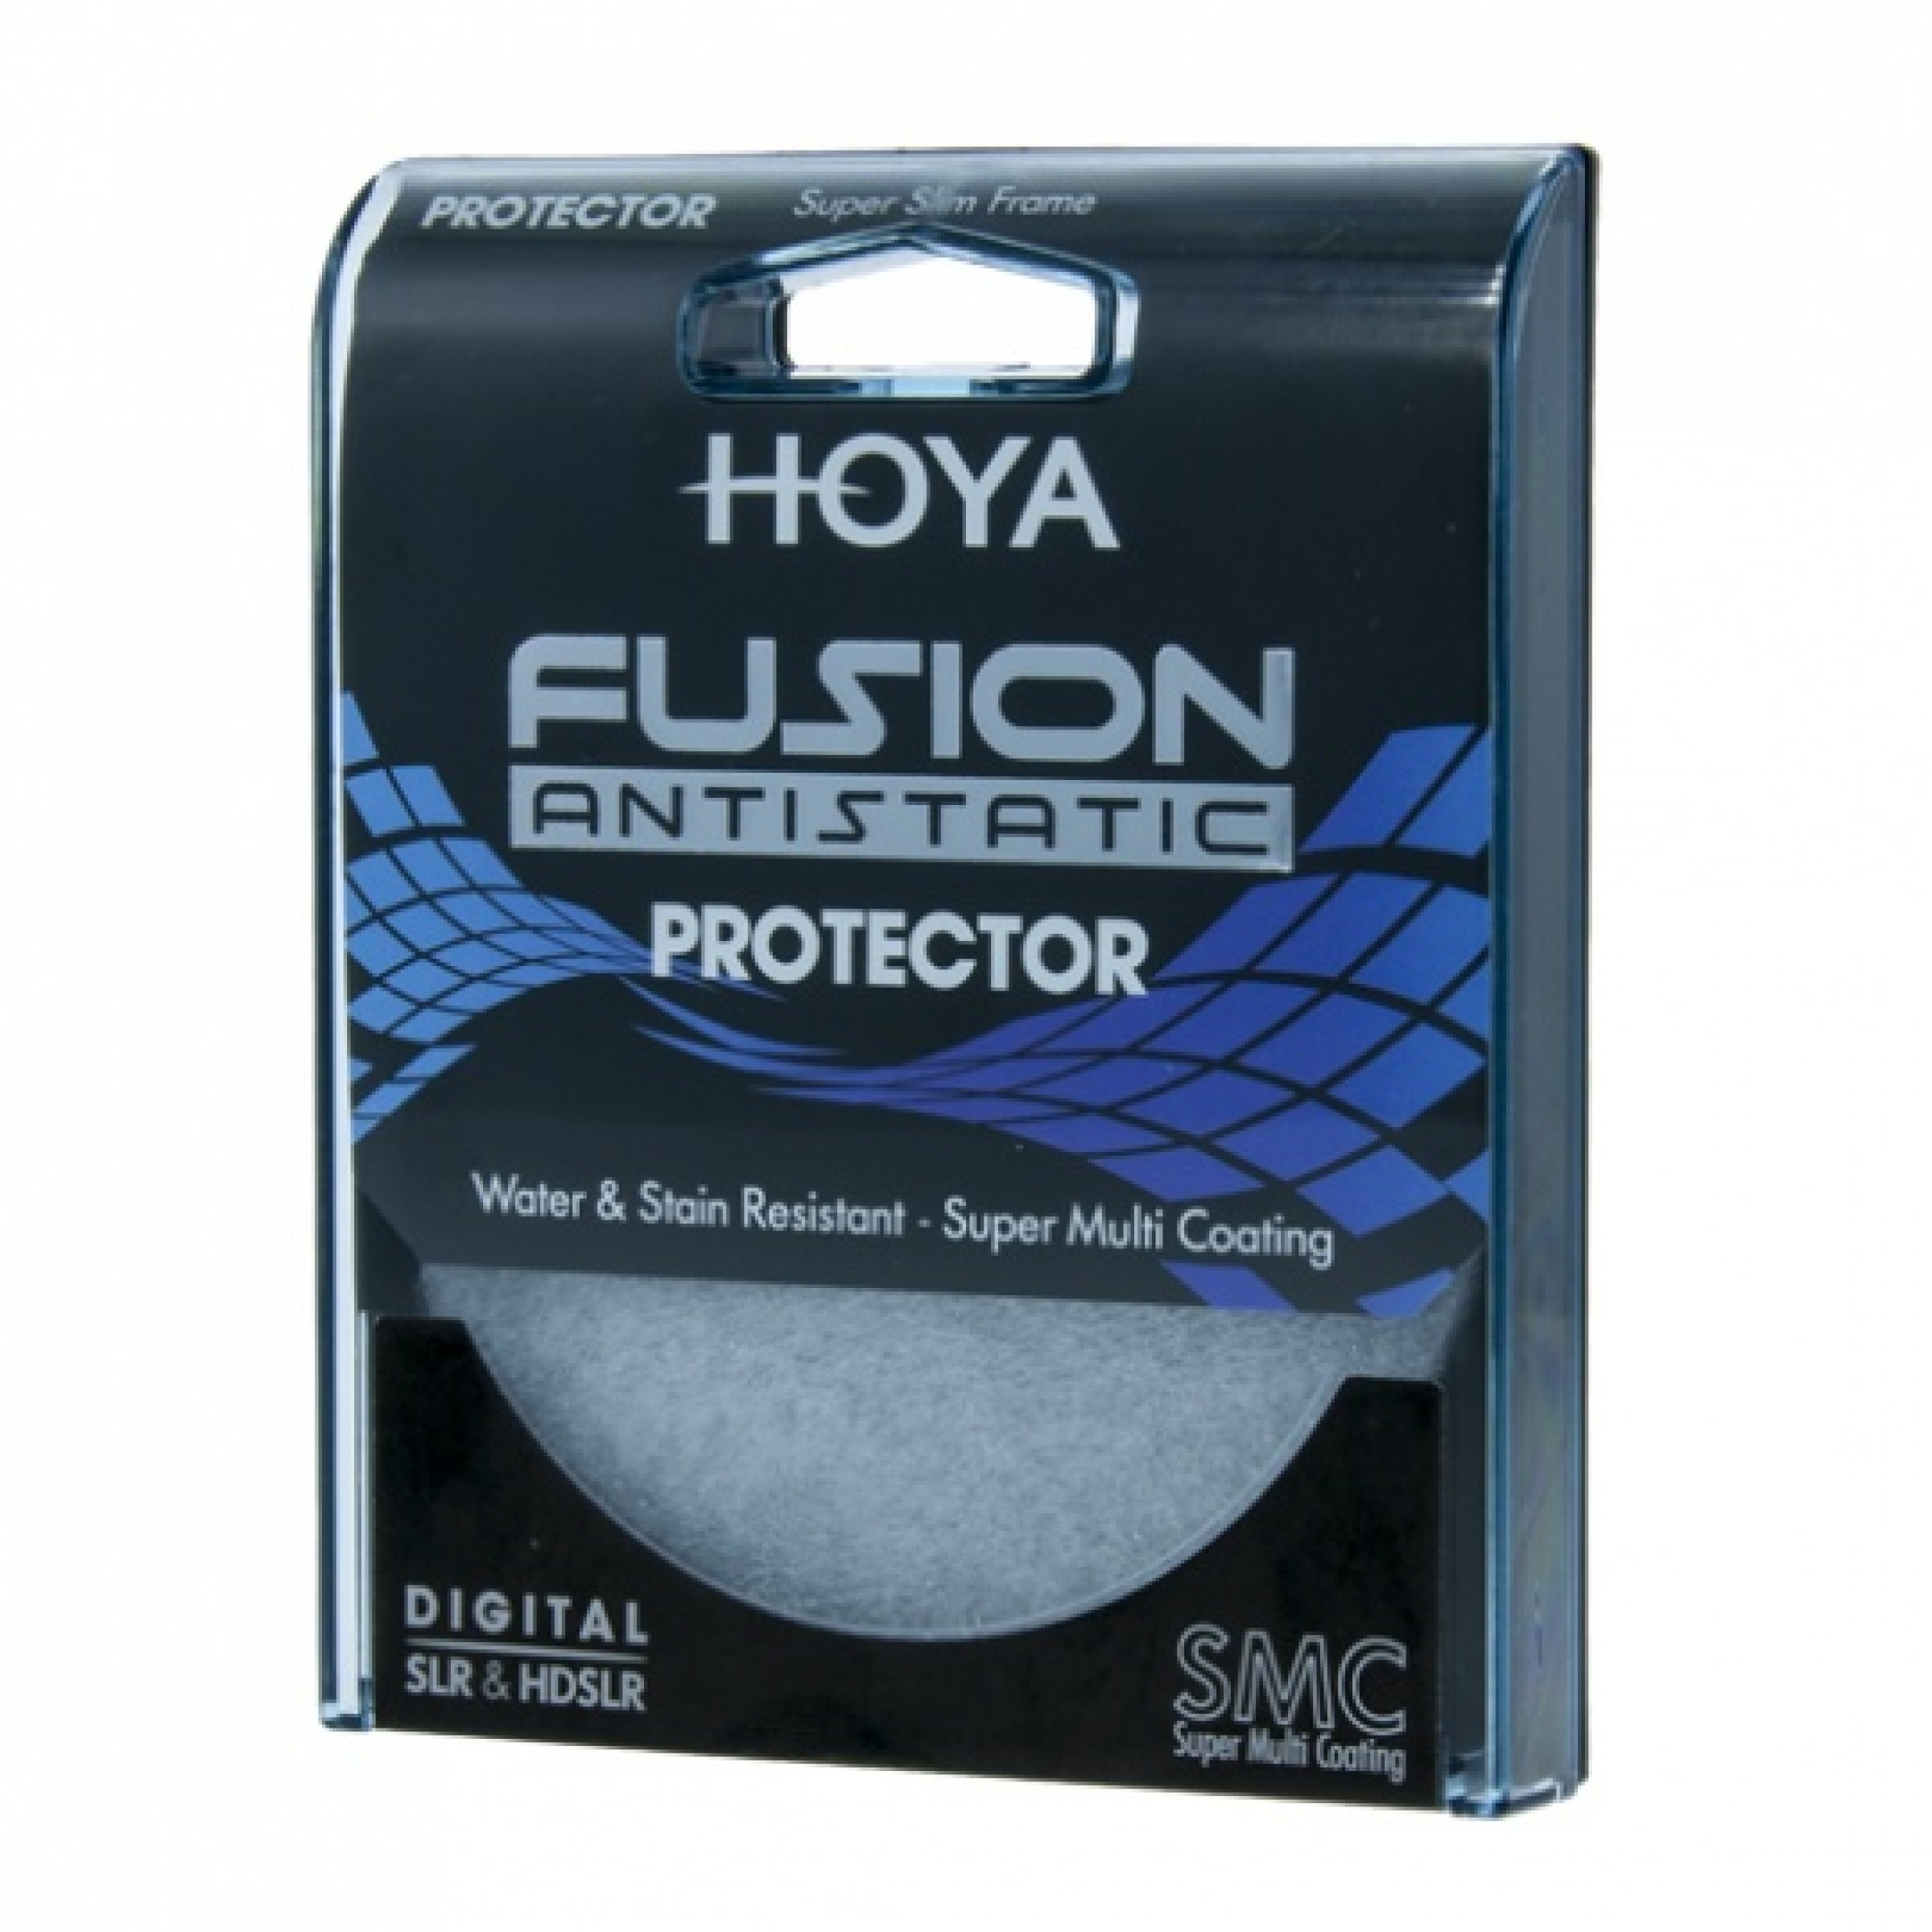 Hoya-52mm-Protector-Fusion-Antistatic